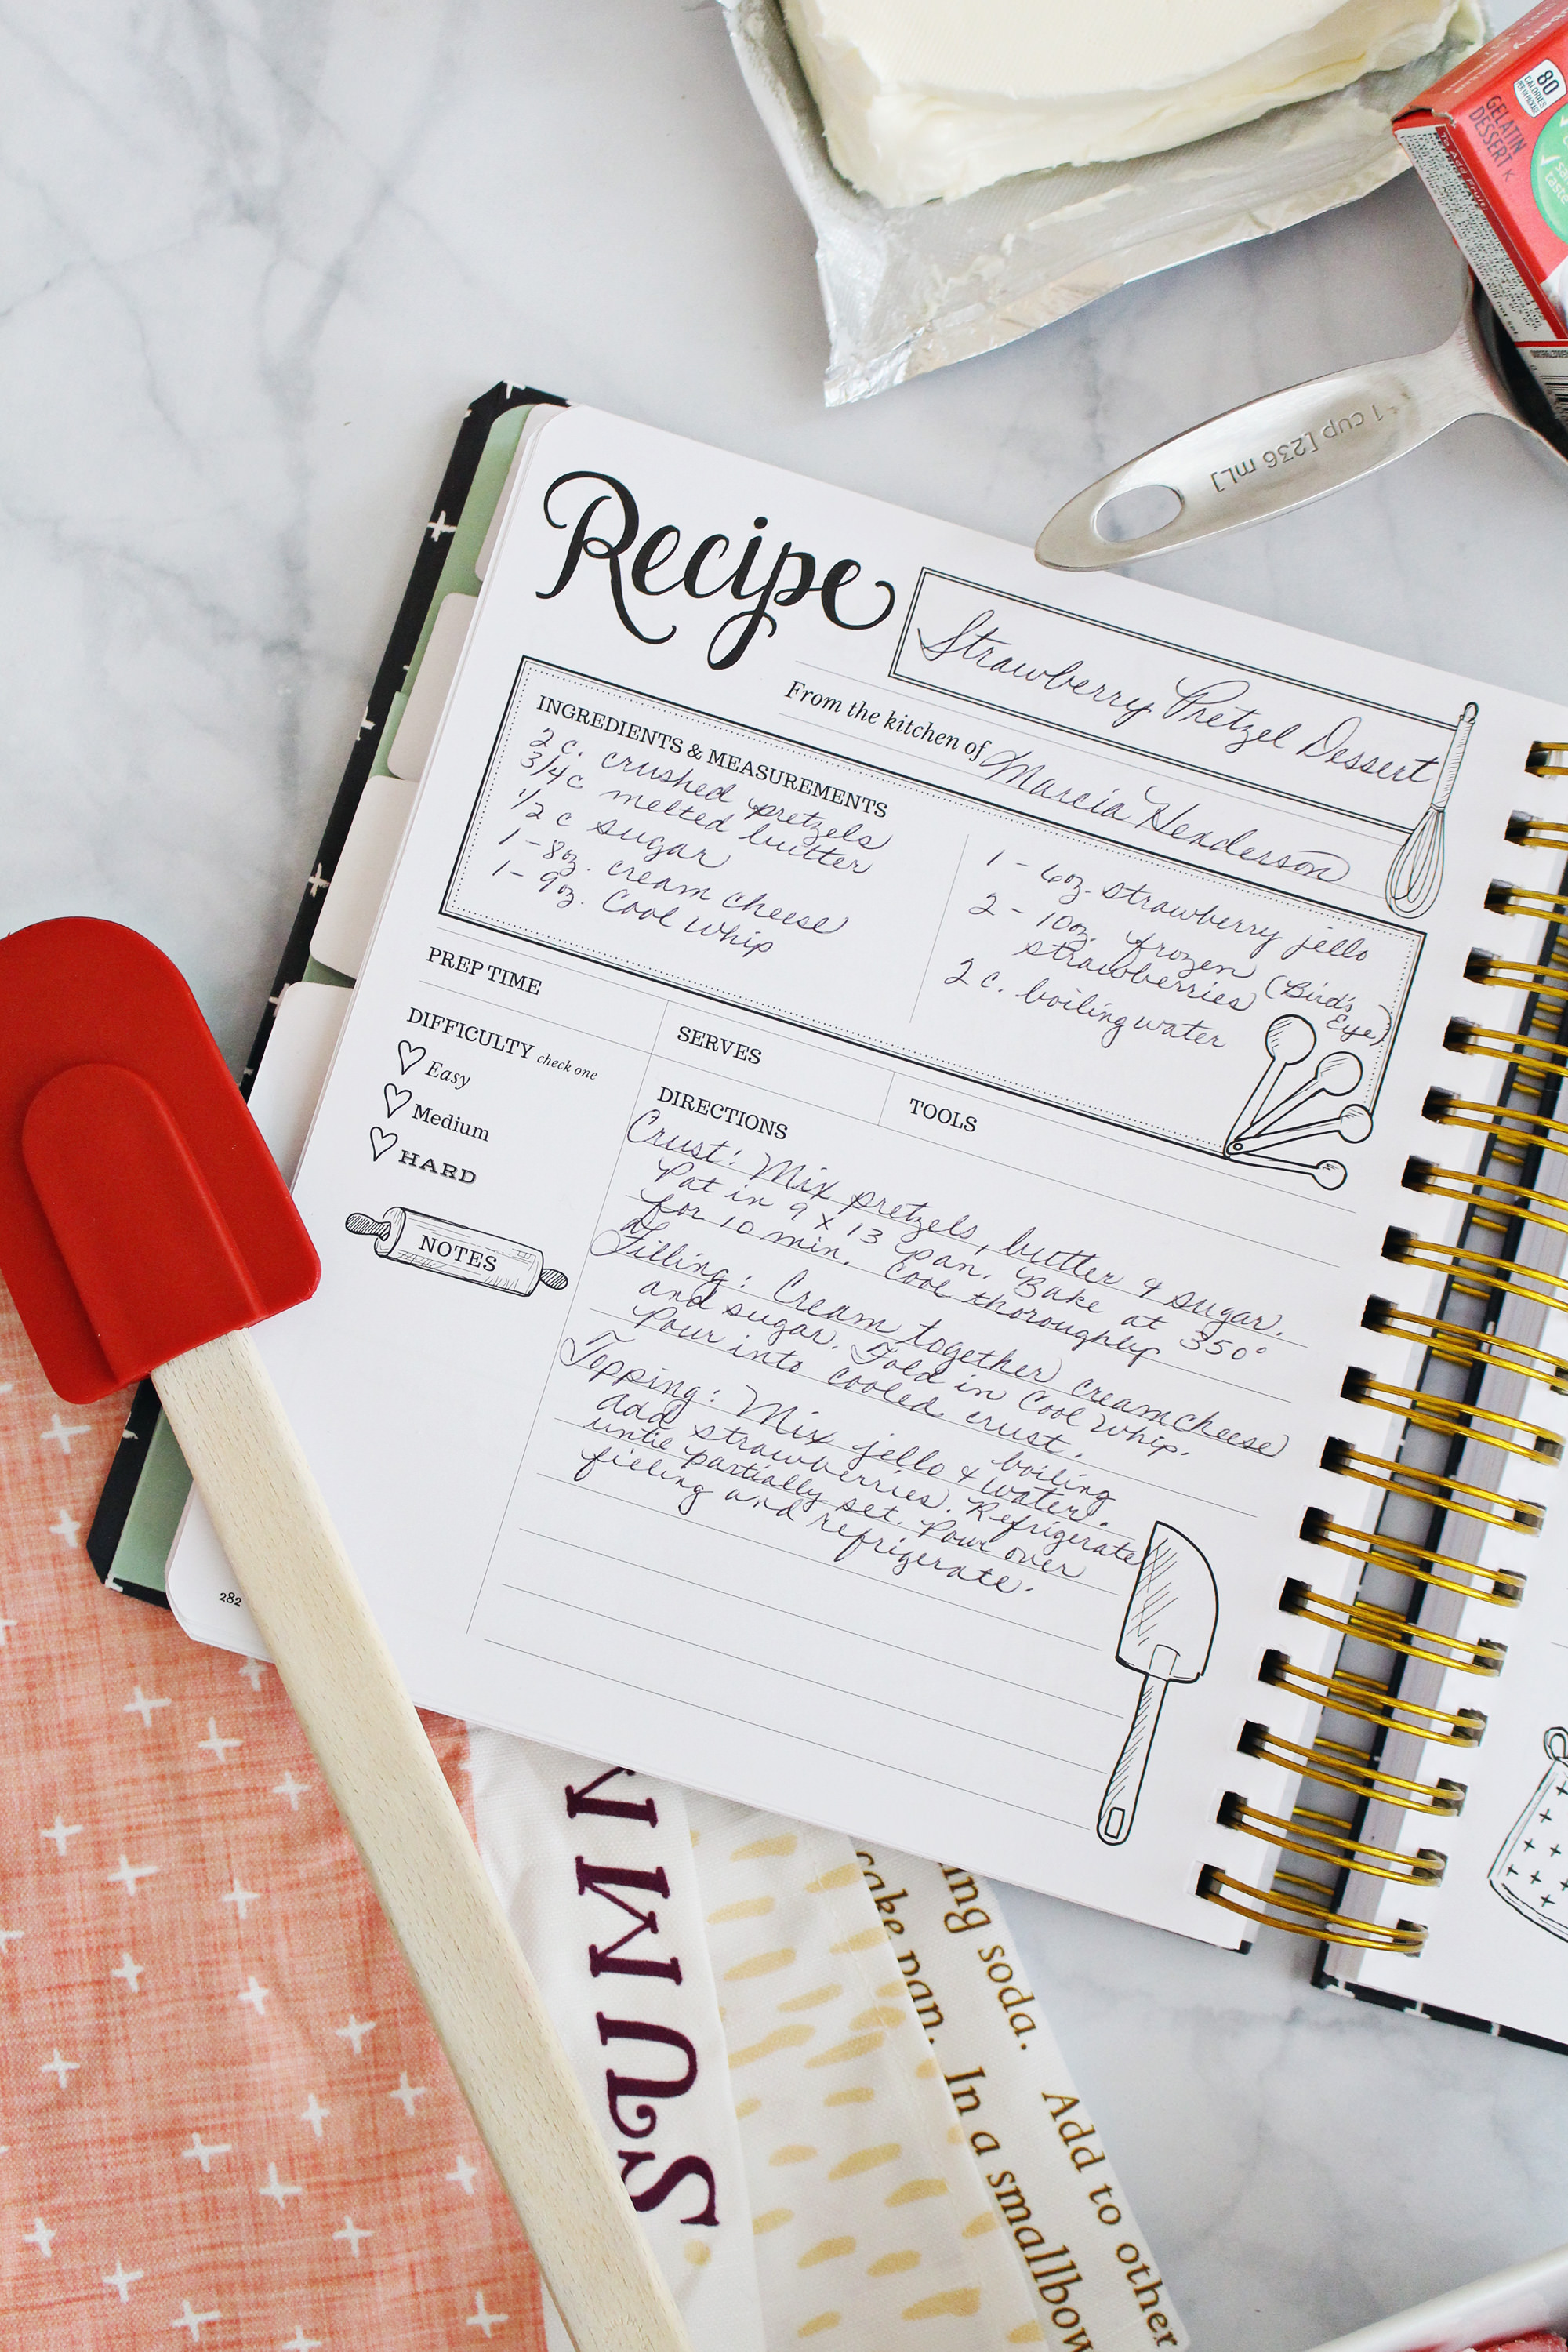 Have family members fill in the pages of your Keepsake Kitchen Diary with their own handwriting. It will be a special, family heirloom.